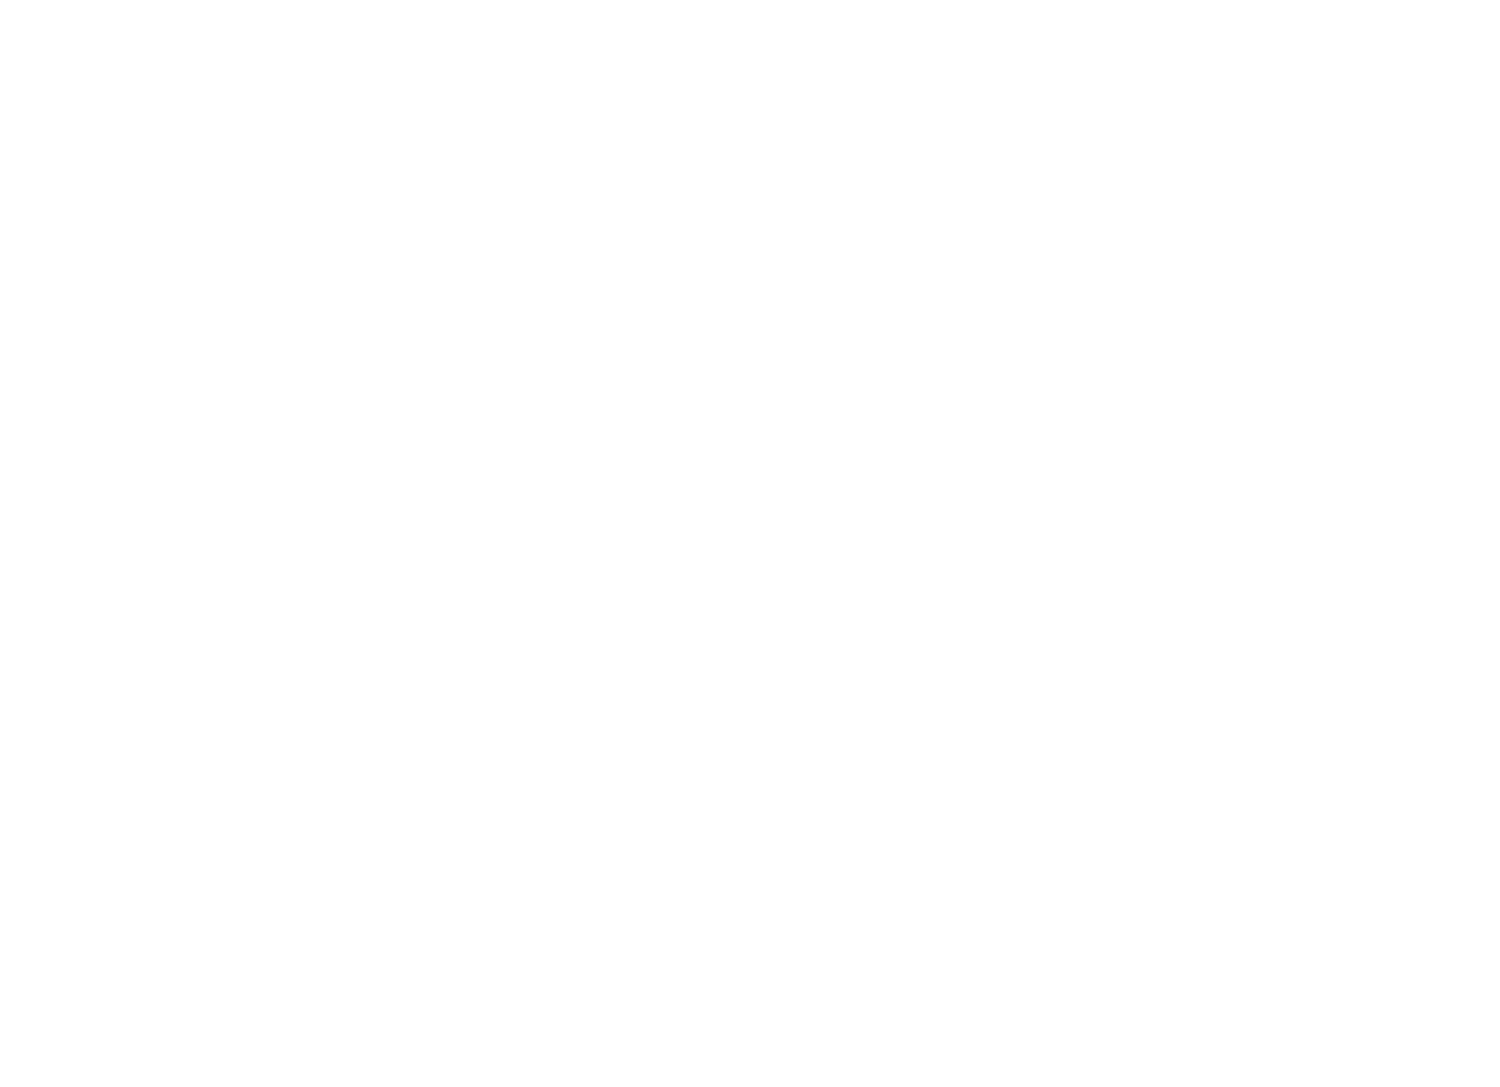 What Would Cheesus Do